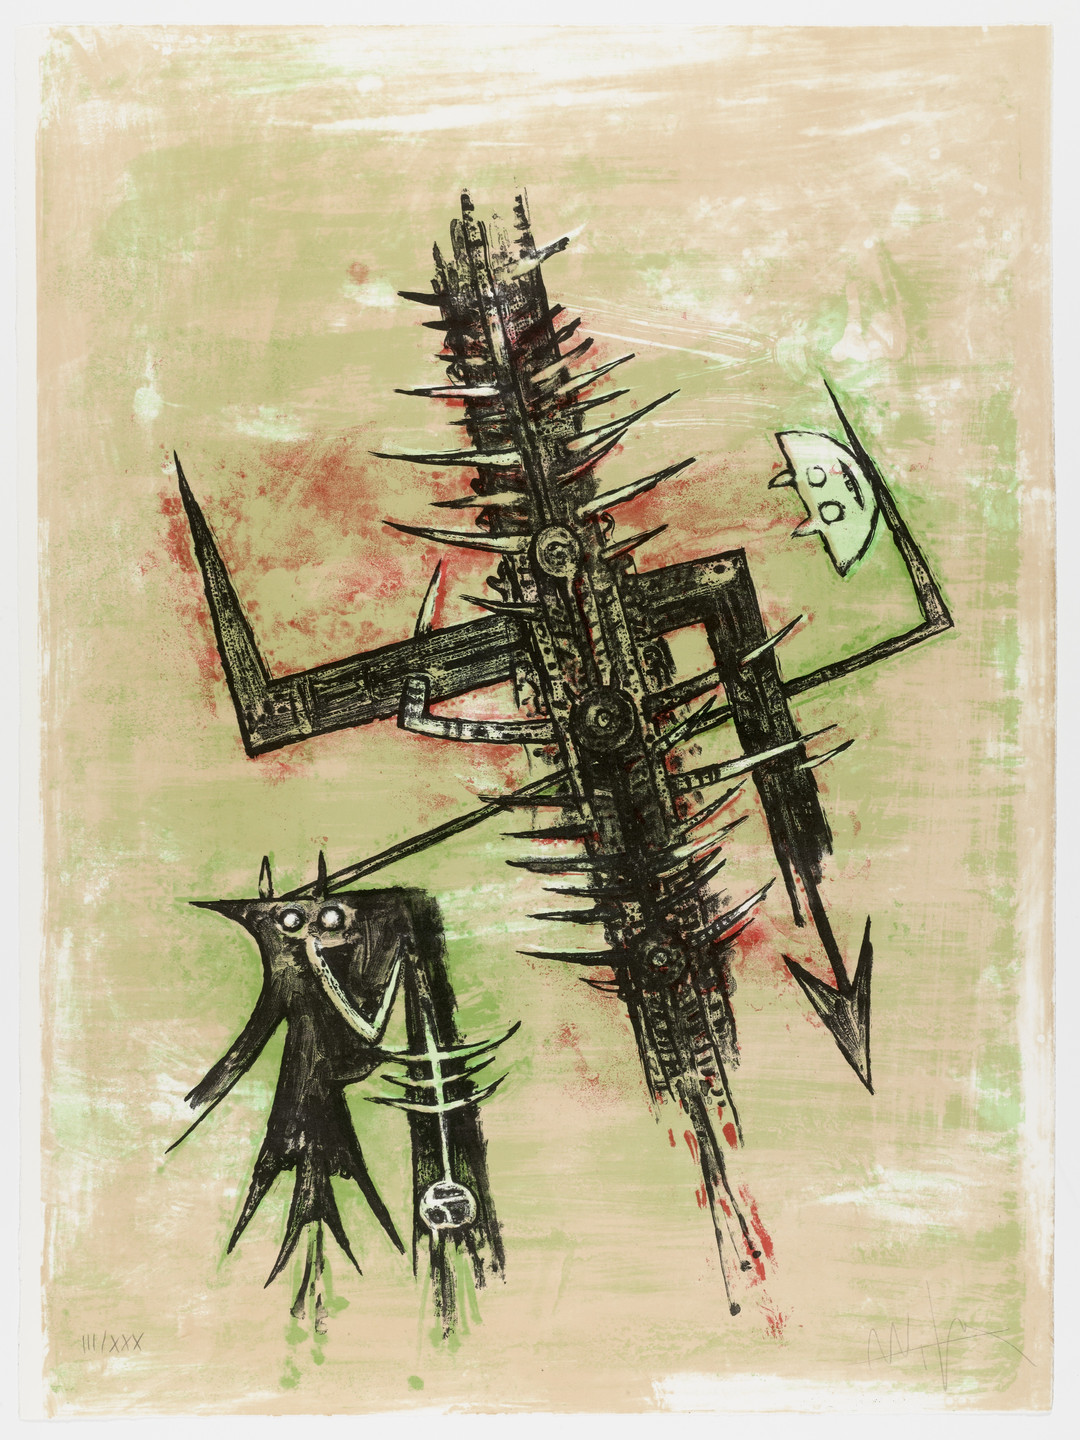 Wifredo Lam. Acide doux from Homage to Picasso (Hommage à Picasso). 1973